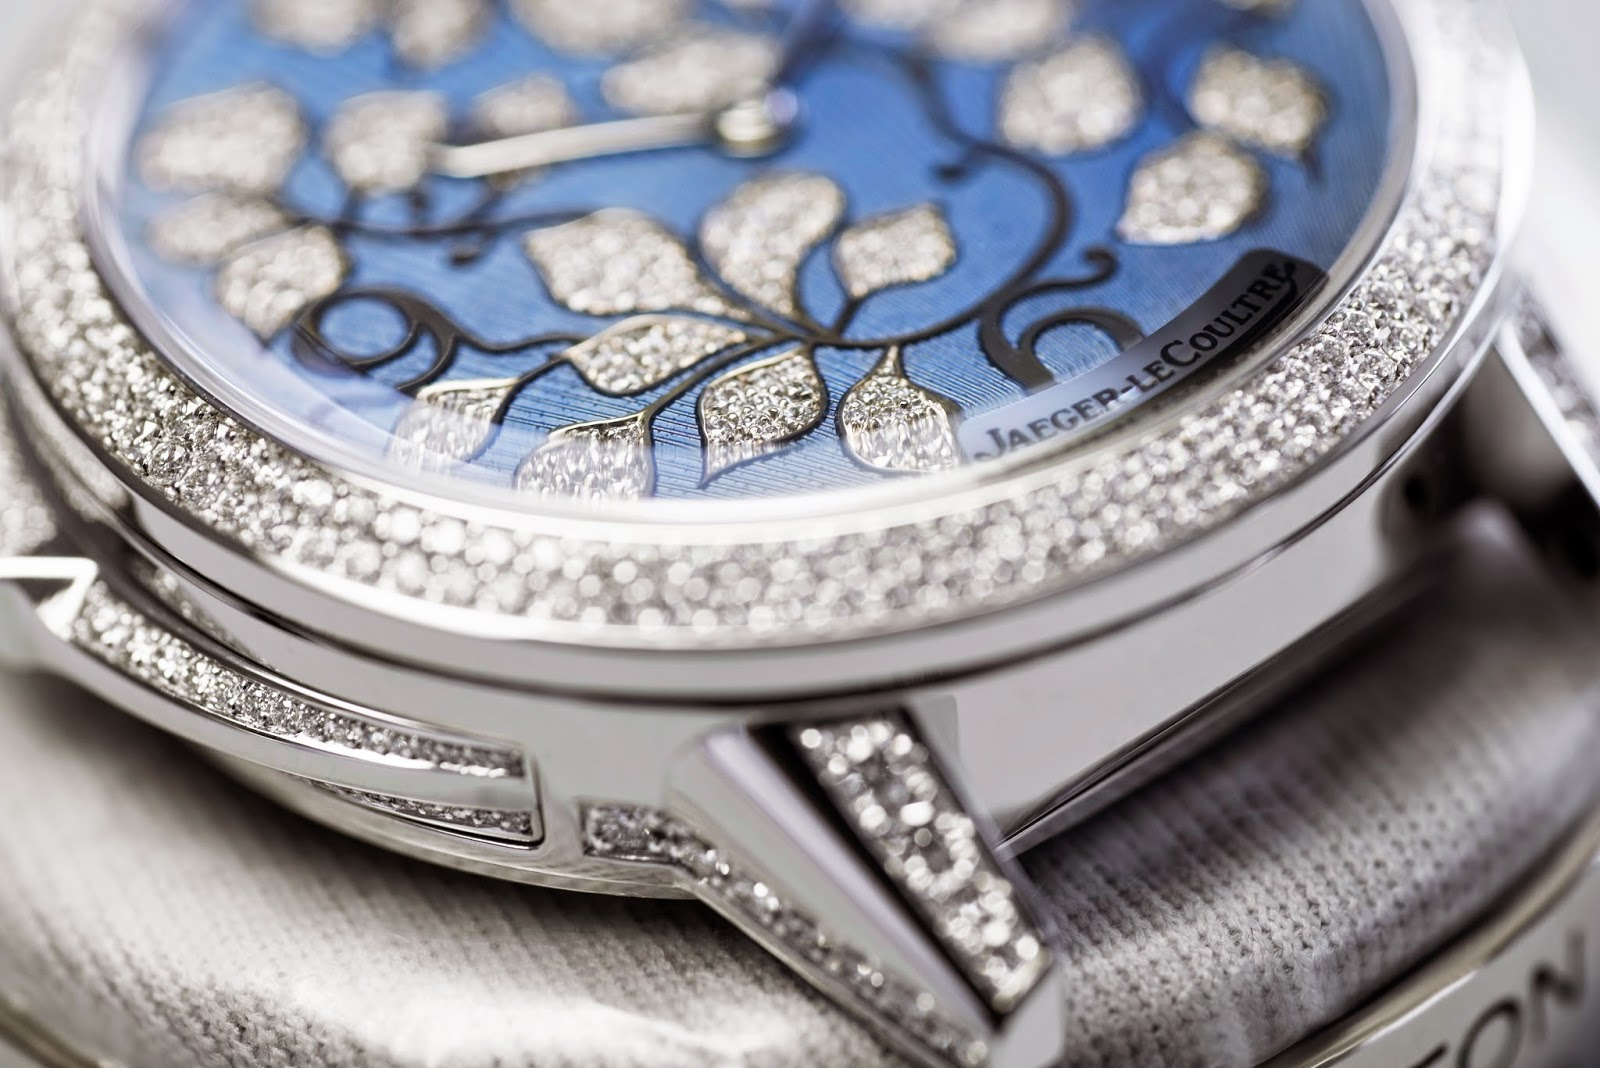 Jaeger-LeCoultre's Rendez-Vous Ivy Minute Repeater